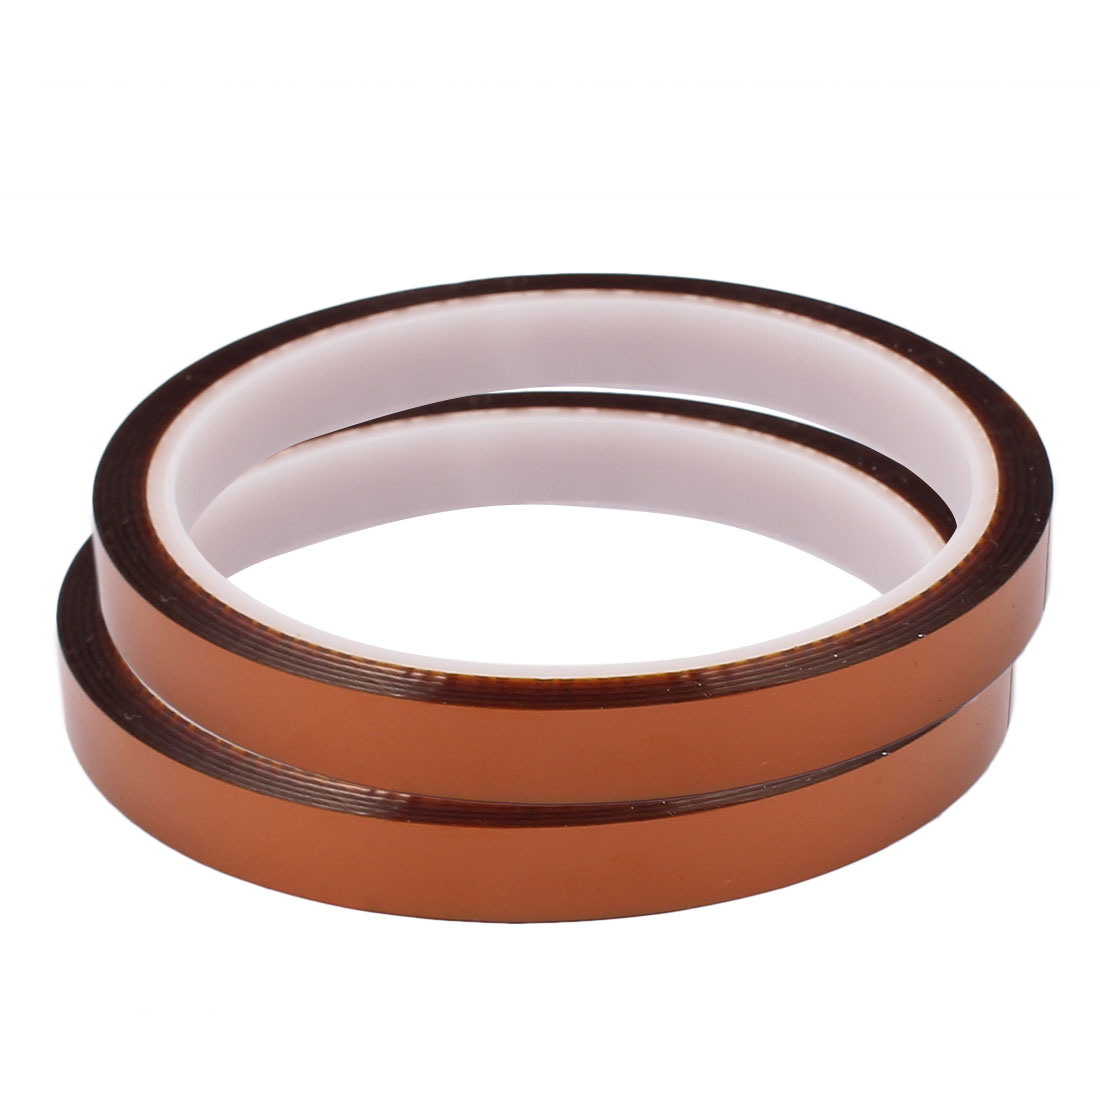 2pcs 10mm Width 33M Length High Temperature Heat Resistant Polyimide Tape